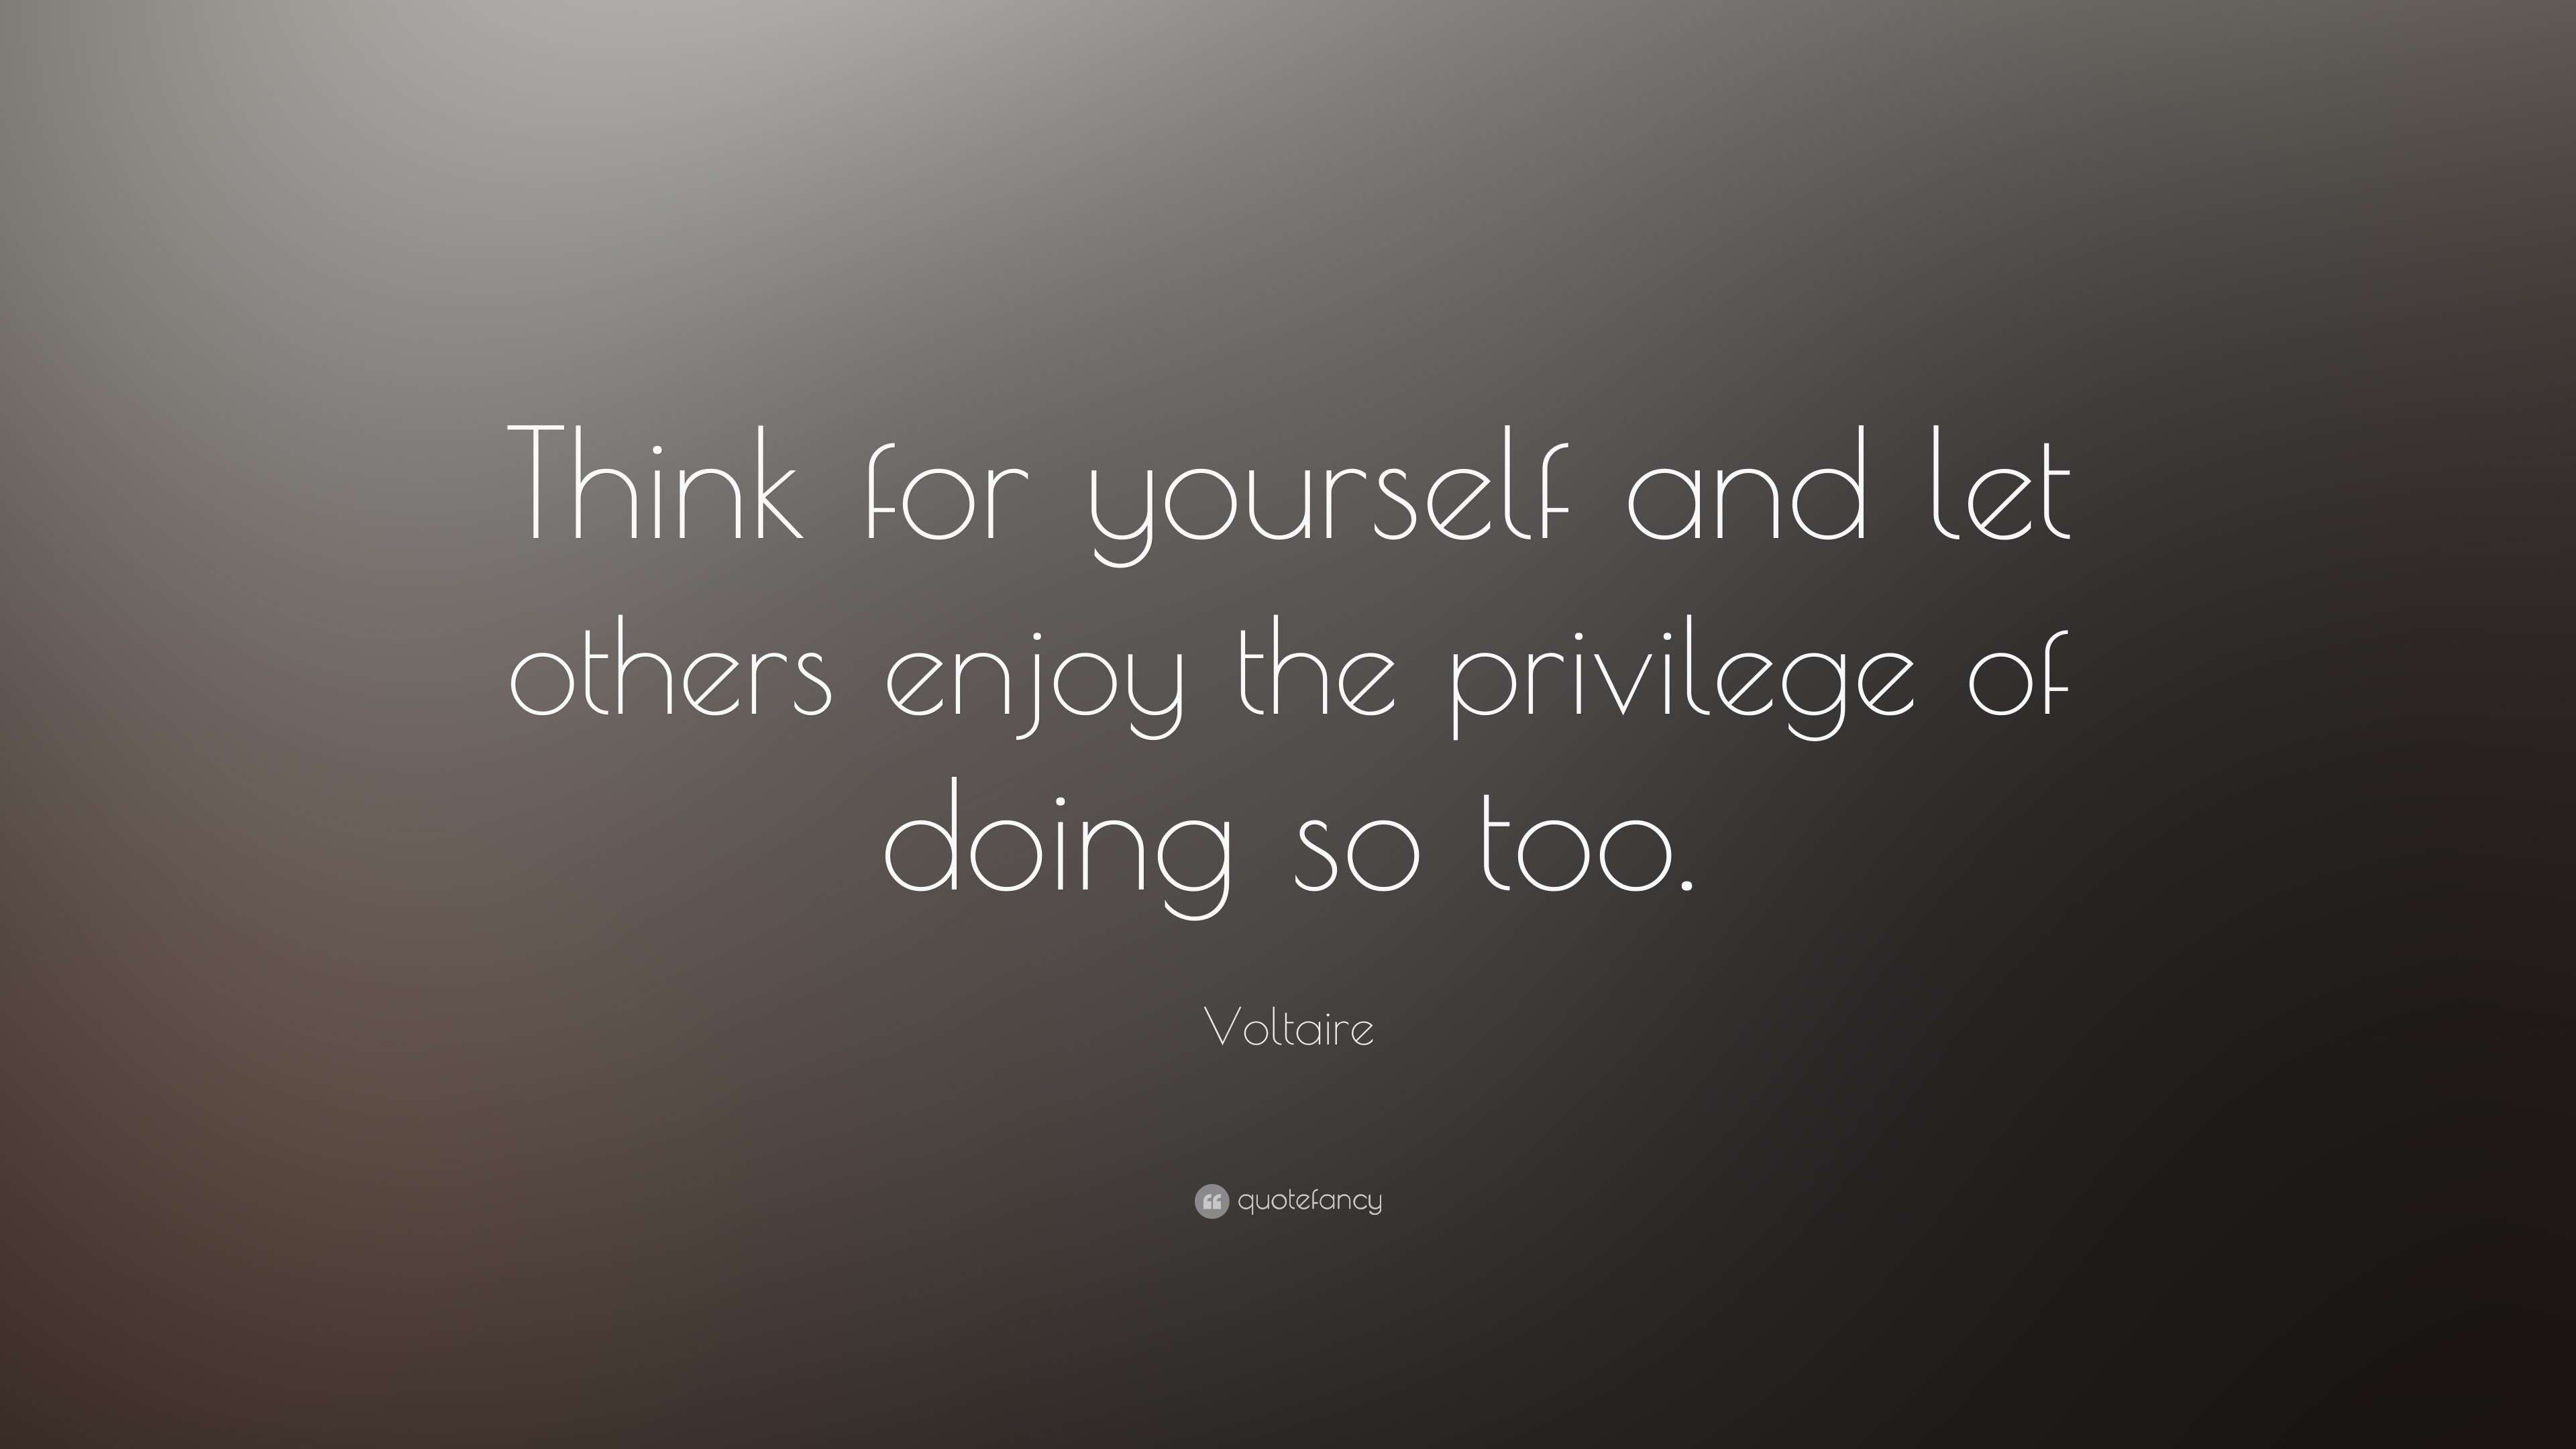 voltaire quote think for yourself and let others enjoy